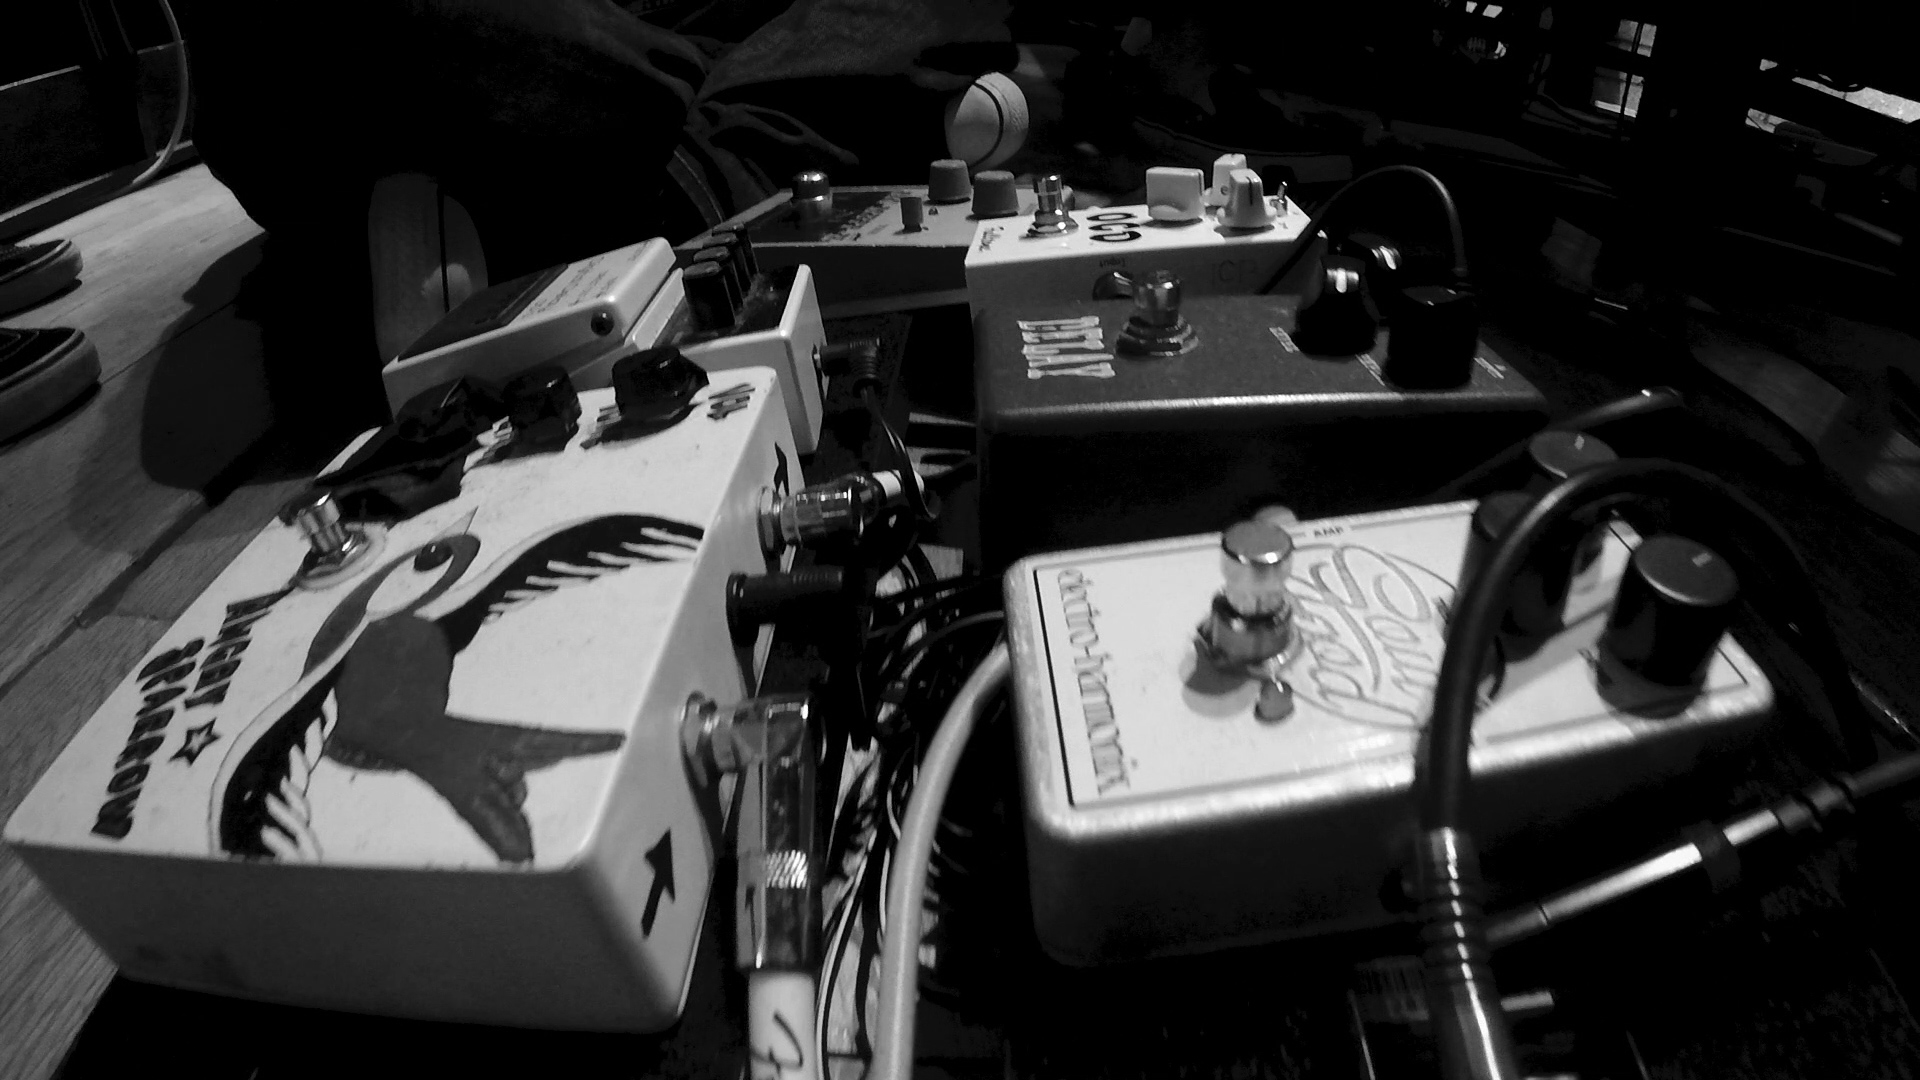 Pedals session studio C